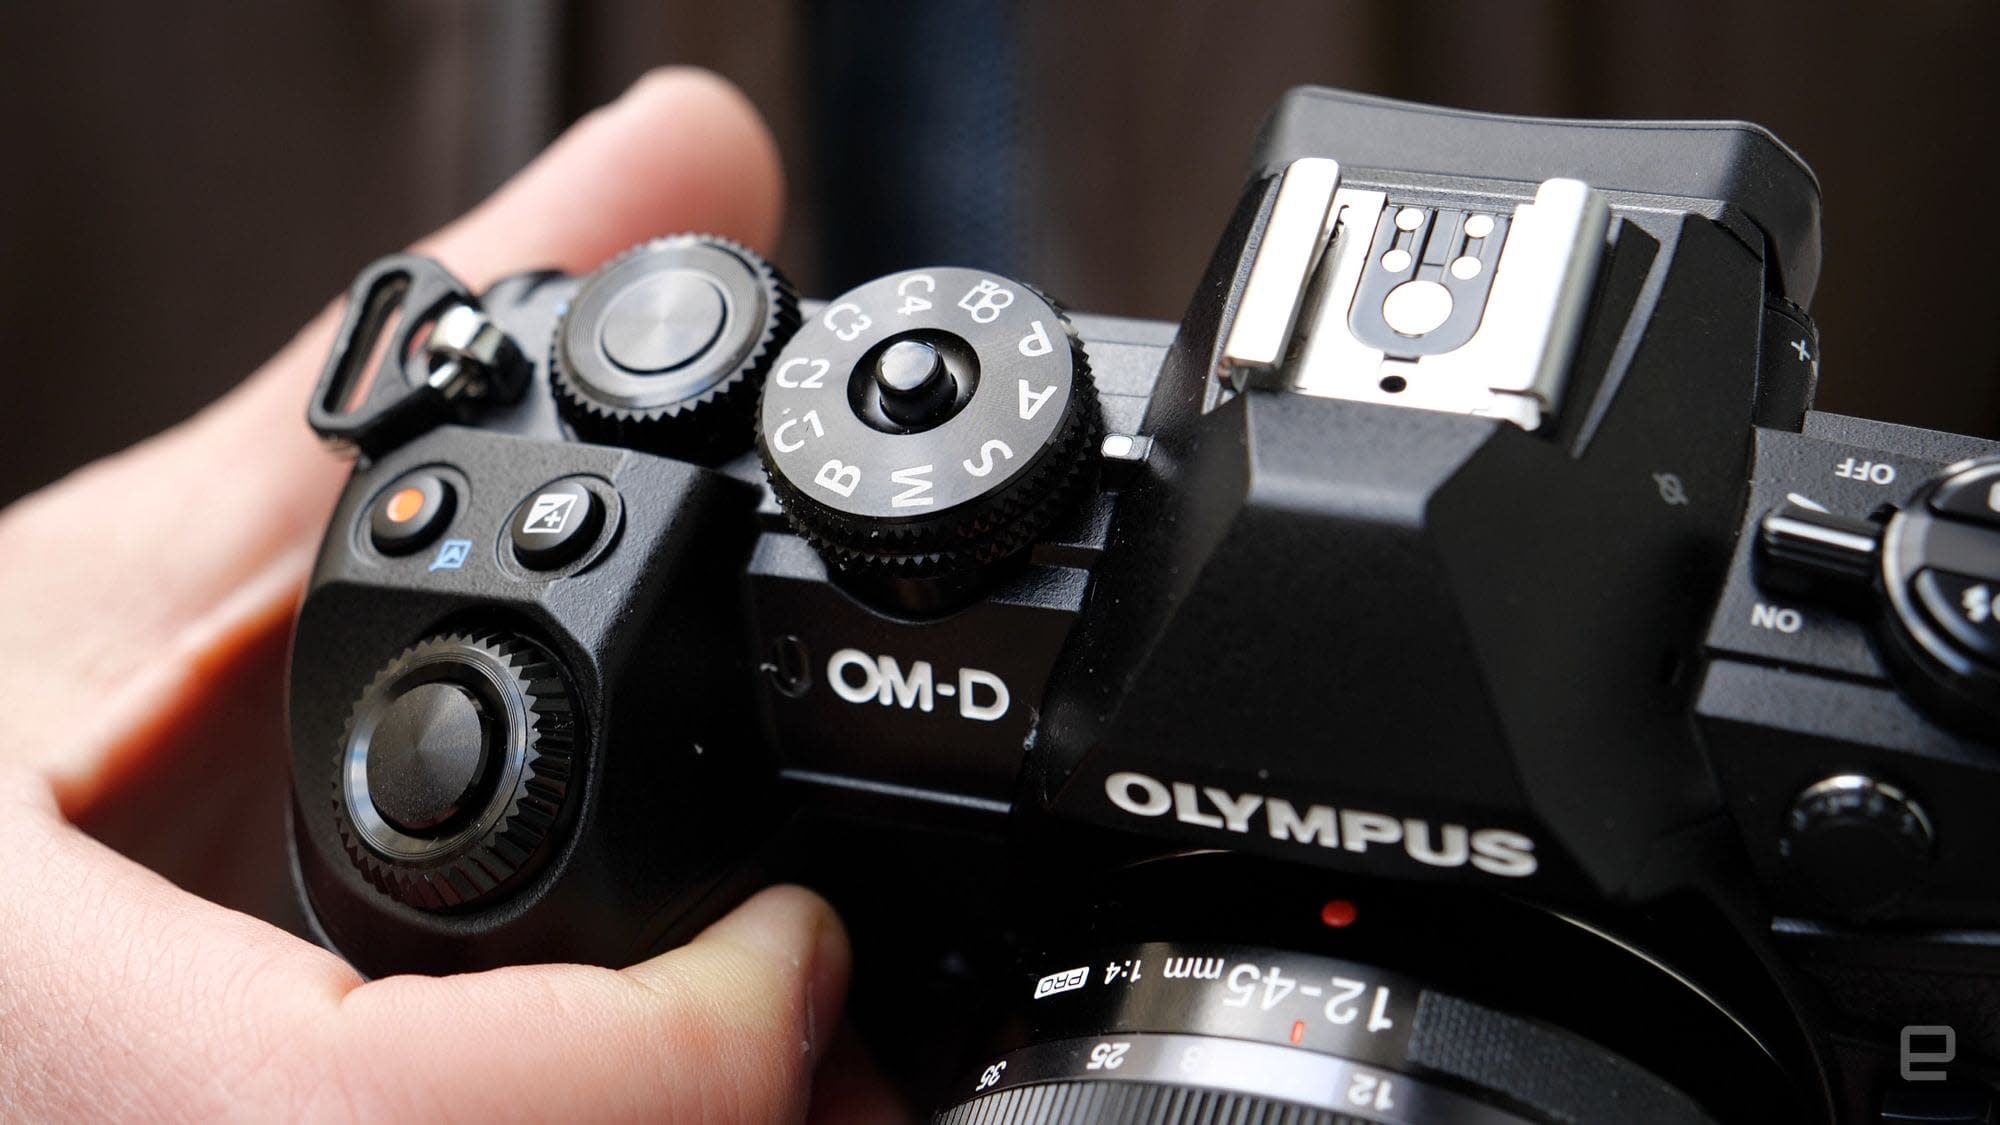 Olympus O-MD E-M1 Mark III Micro Four Thirds mirrorless camera